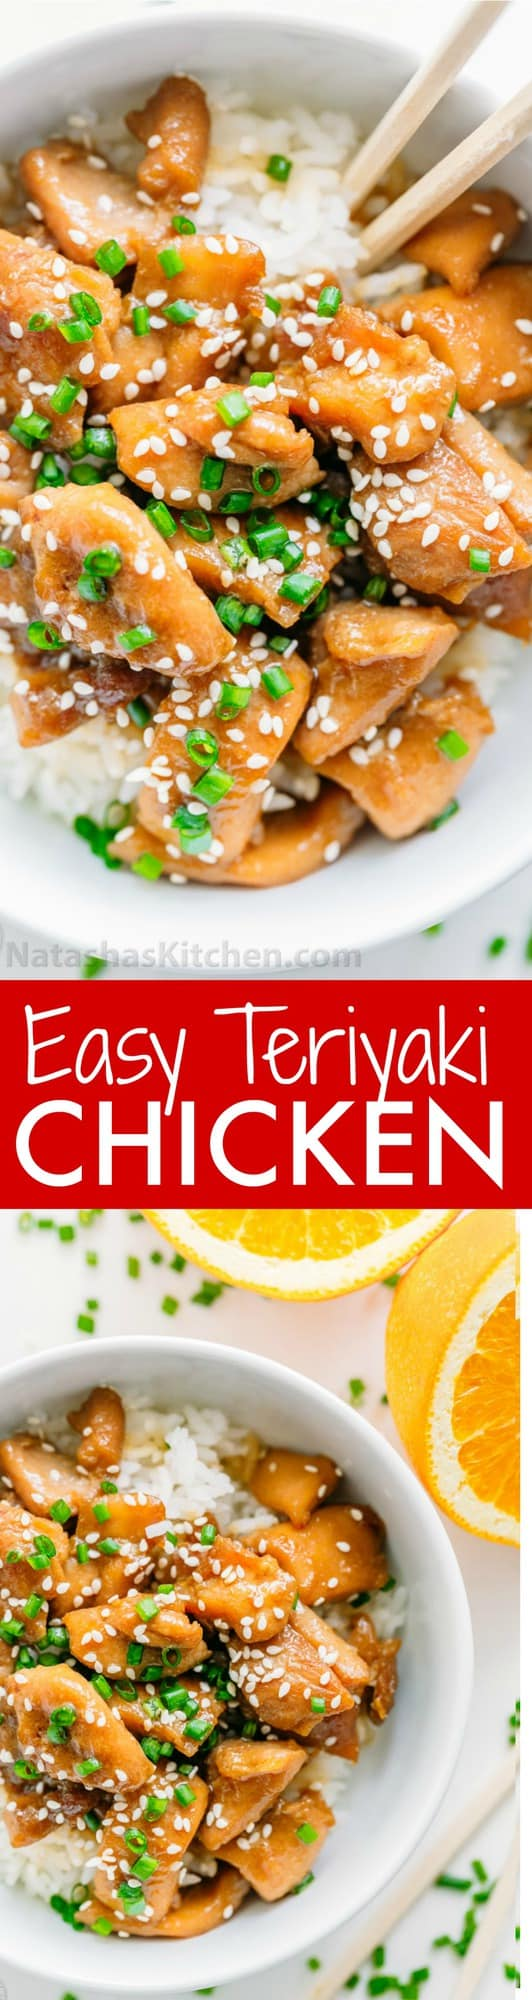 This chicken teriyaki easy to make and the sauce is just right. A chicken teriyaki recipe that totally satisfies the craving for takeout, only way better!   natashaskitchen.com